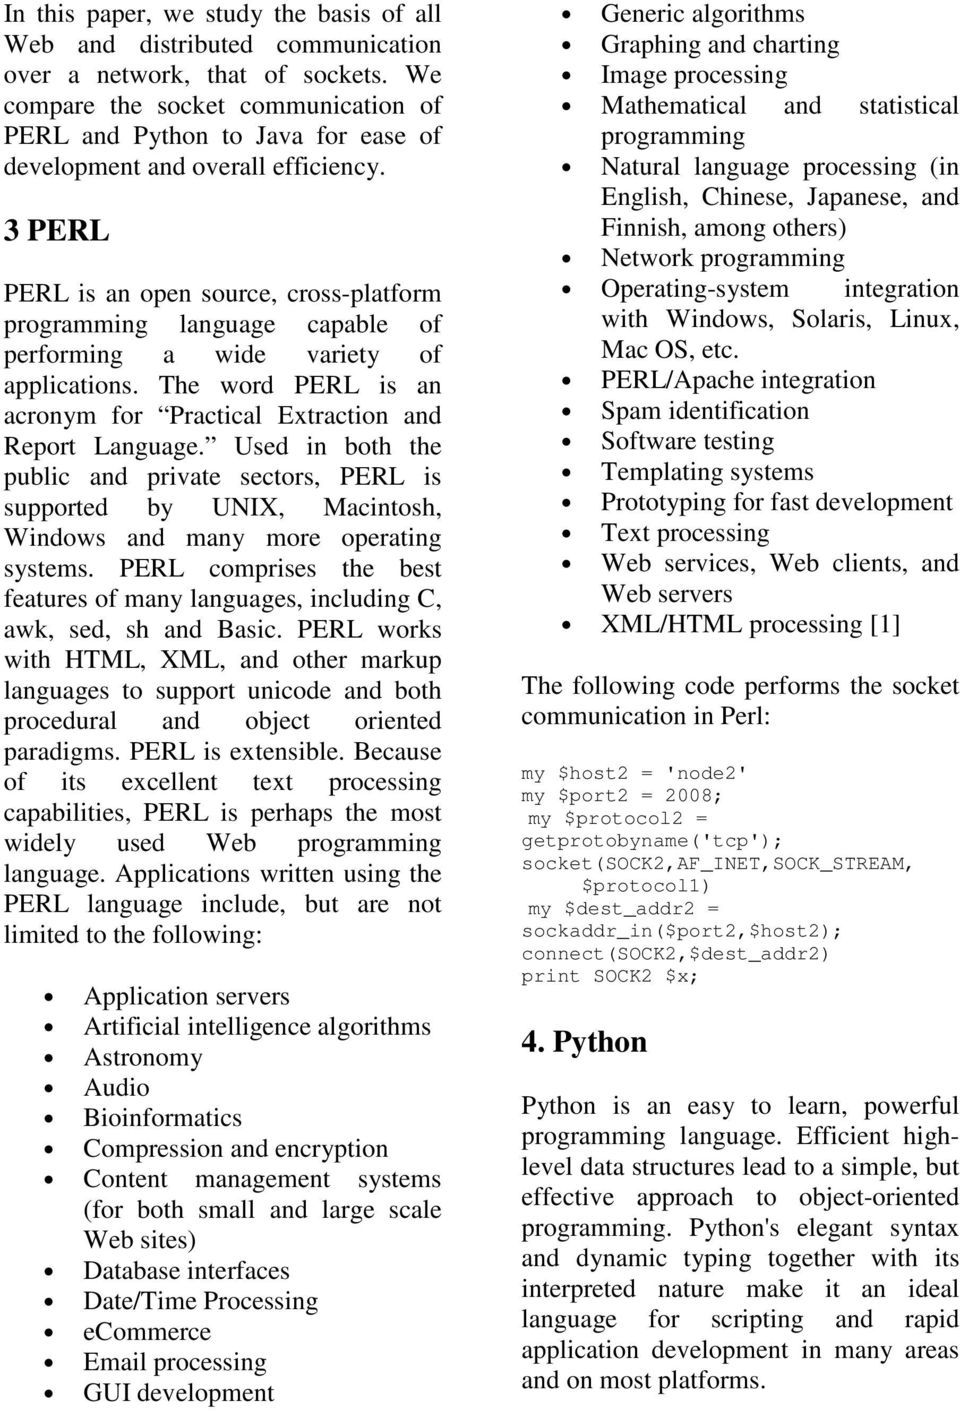 3 PERL PERL is an open source, cross-platform programming language capable of performing a wide variety of applications. The word PERL is an acronym for Practical Extraction and Report Language.